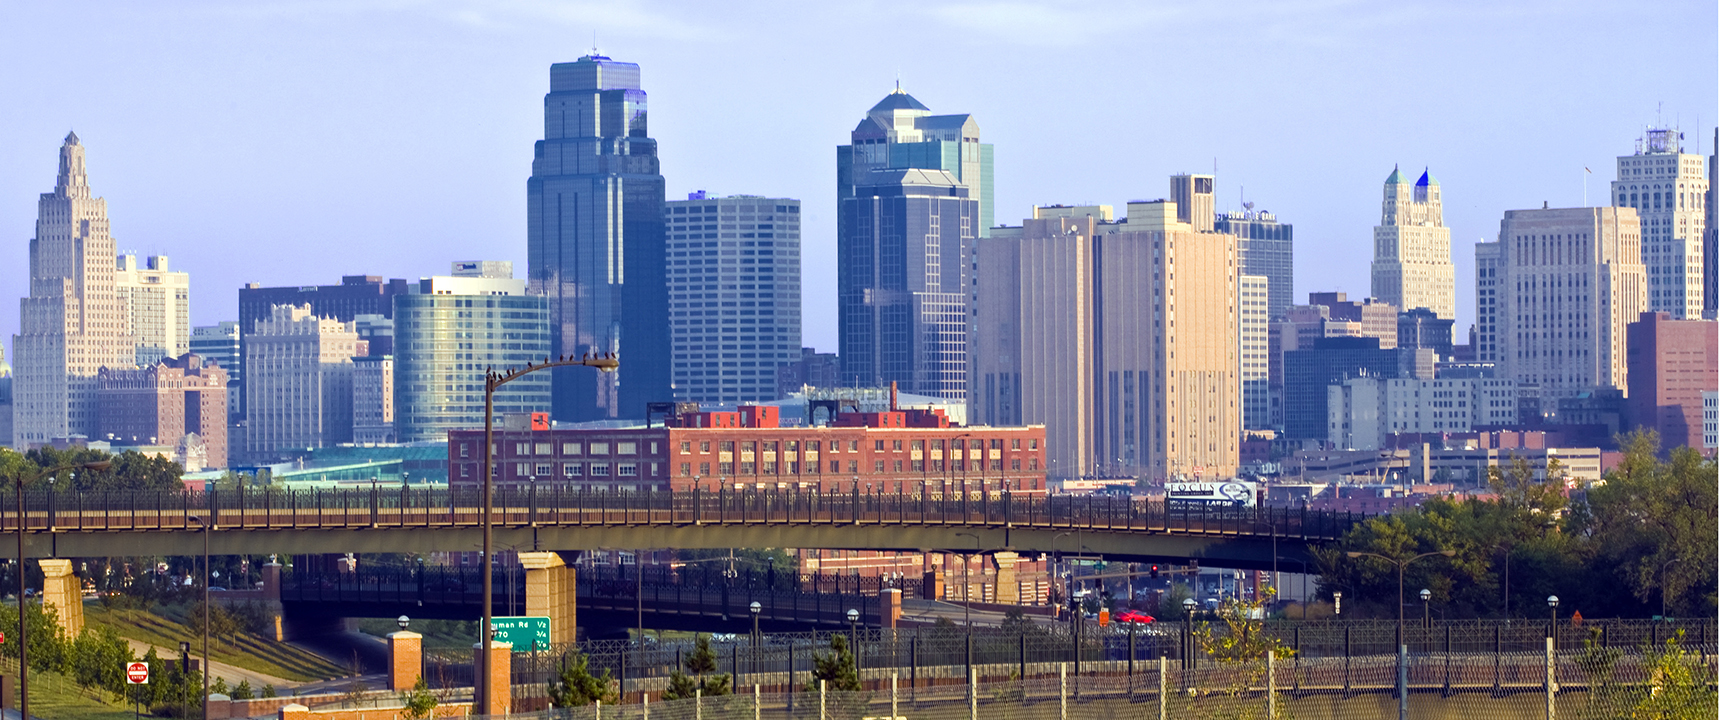 Photo of Kansas City where the Kansas City Business Center is located.